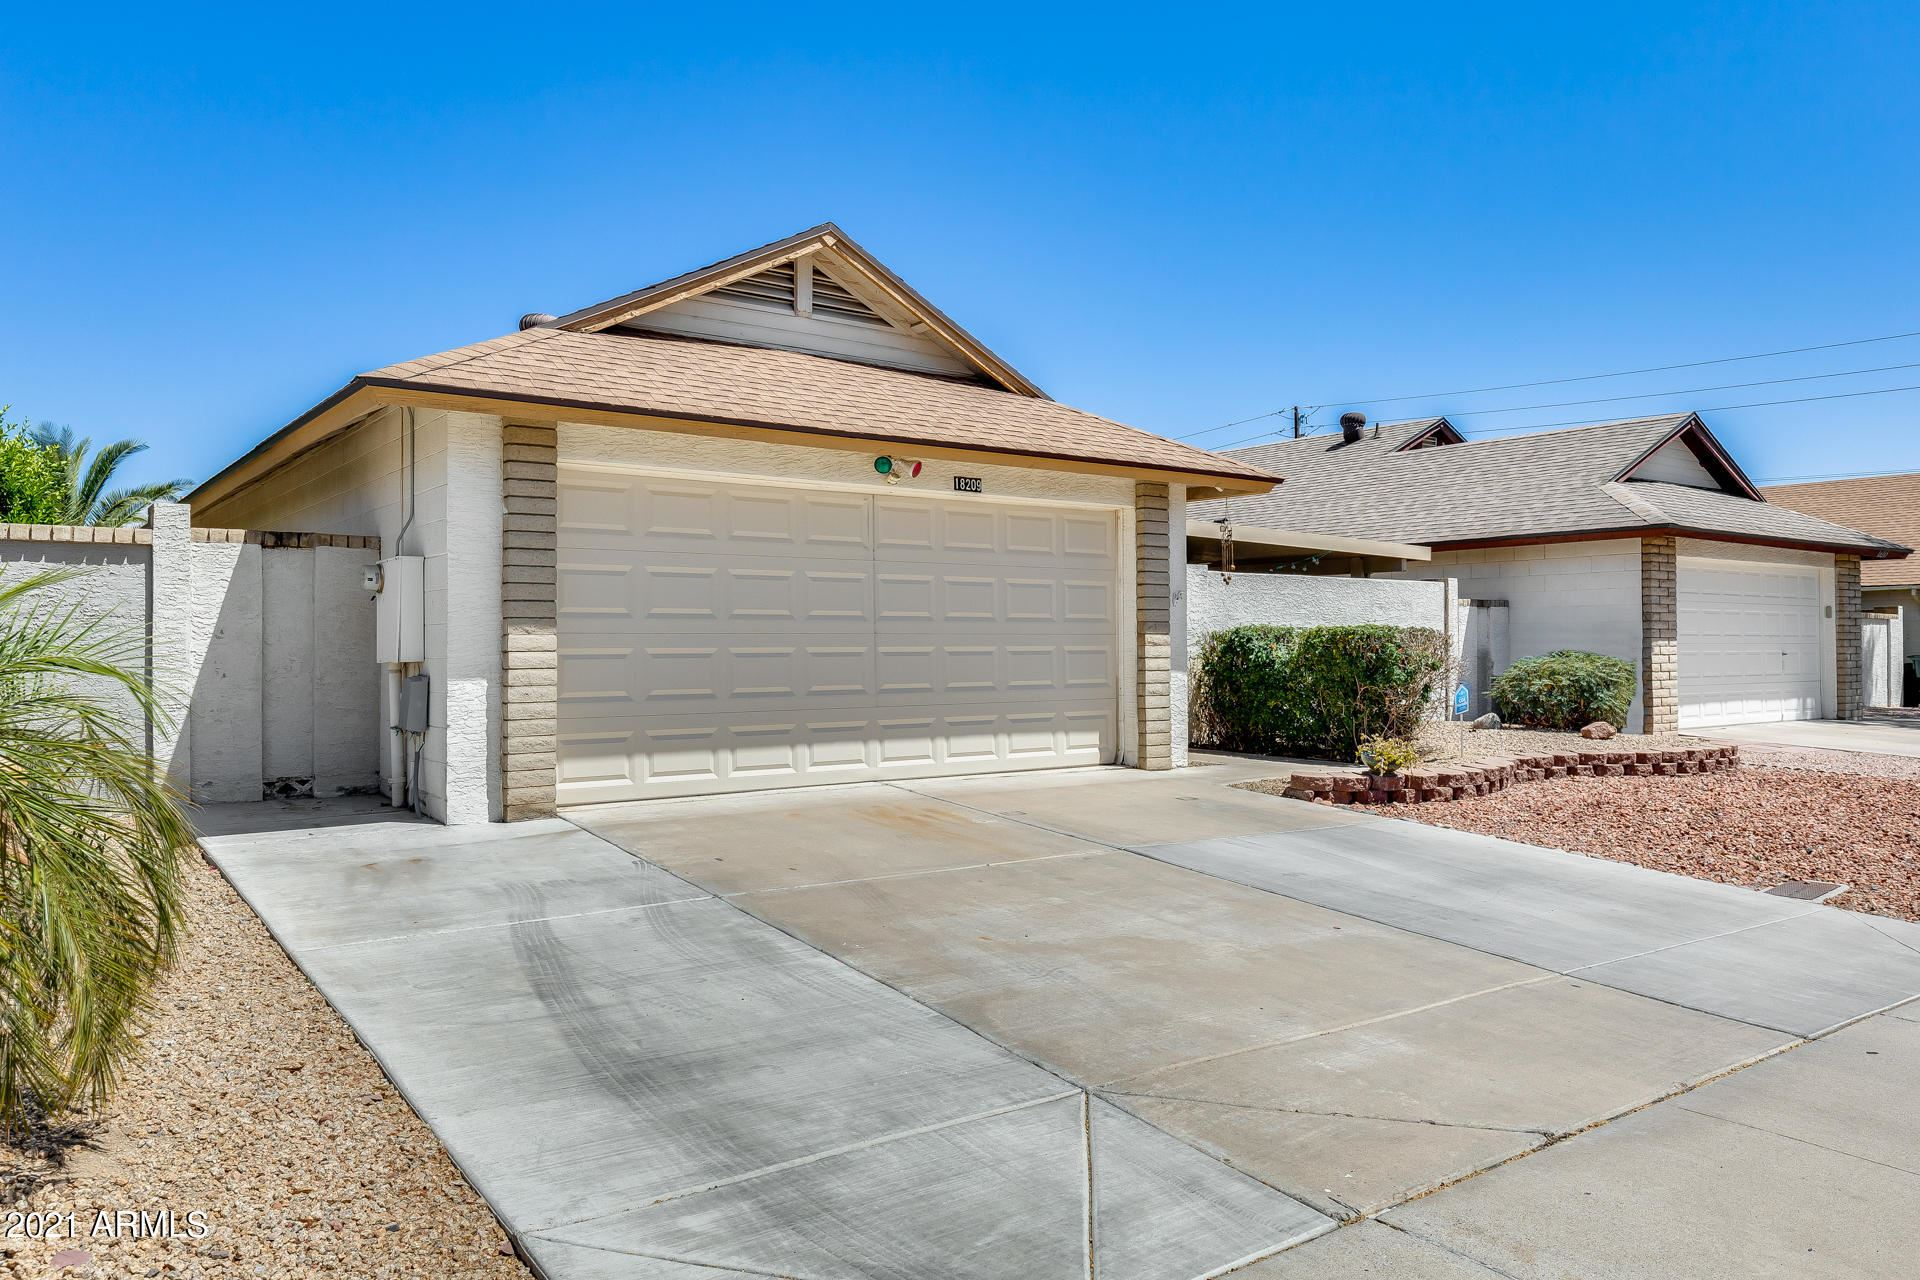 18209 N 18TH Place, Phoenix, AZ 85022 - MLS#: 6231509